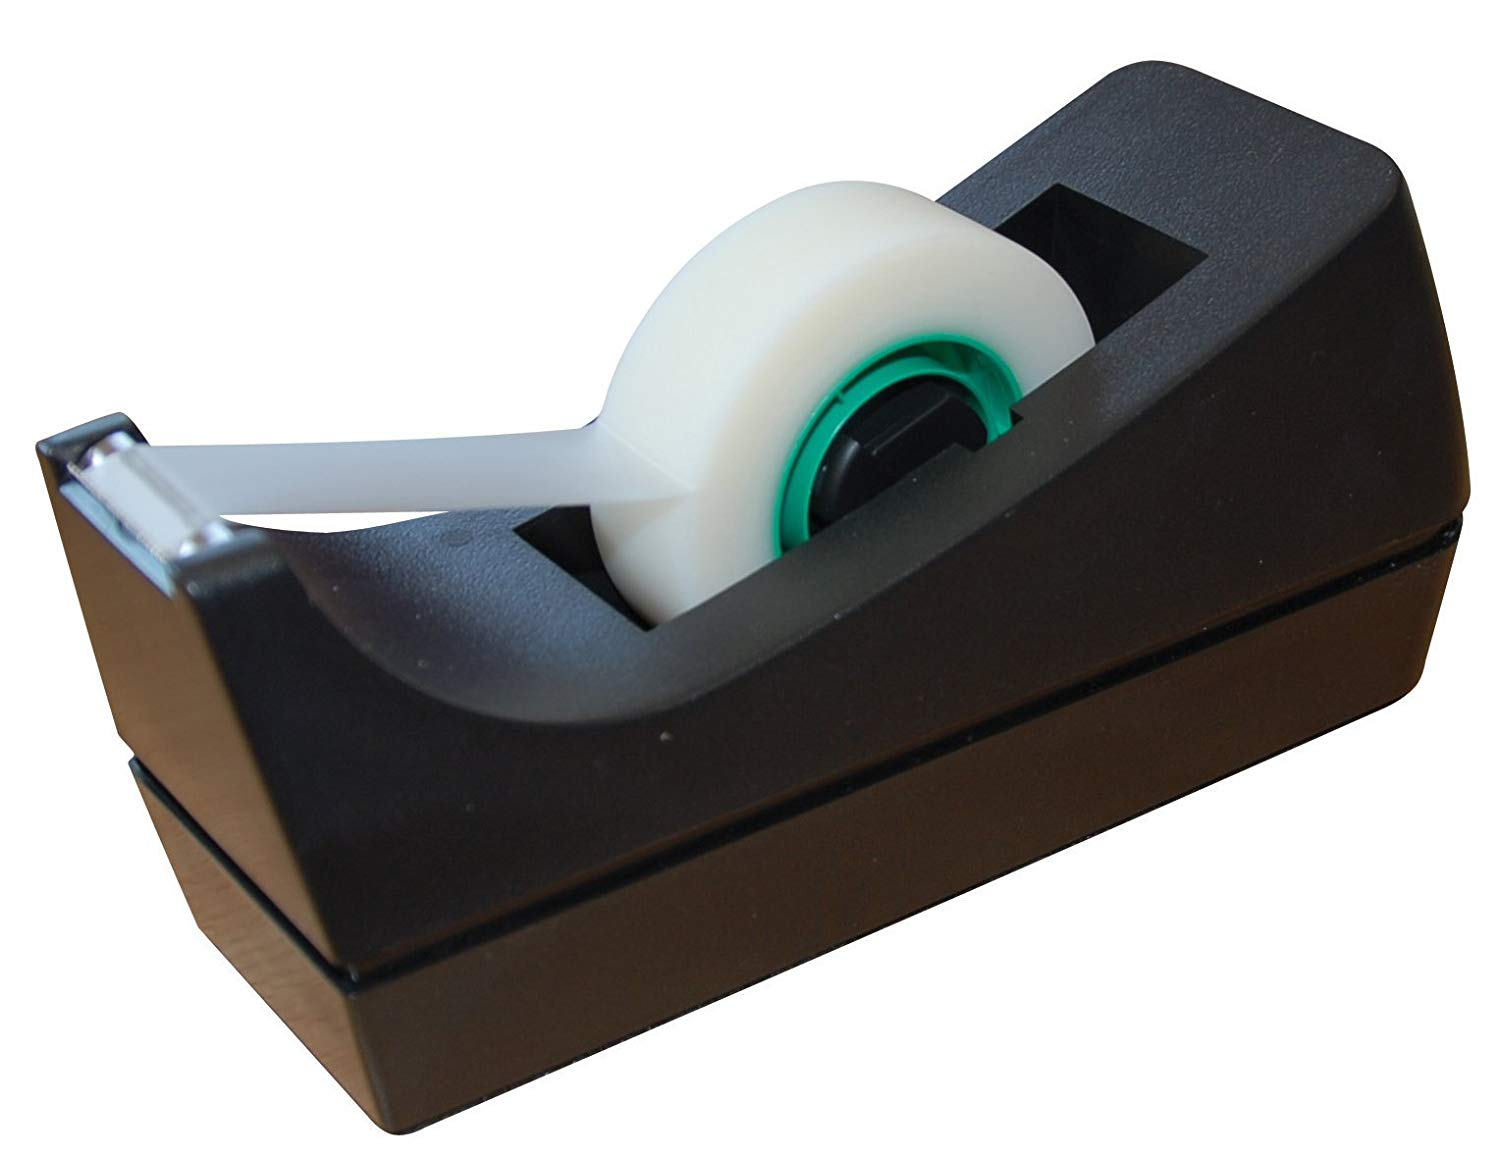 5 Star Mini Tape Dispenser For Rolls Up To 33mx19mm at Amazon